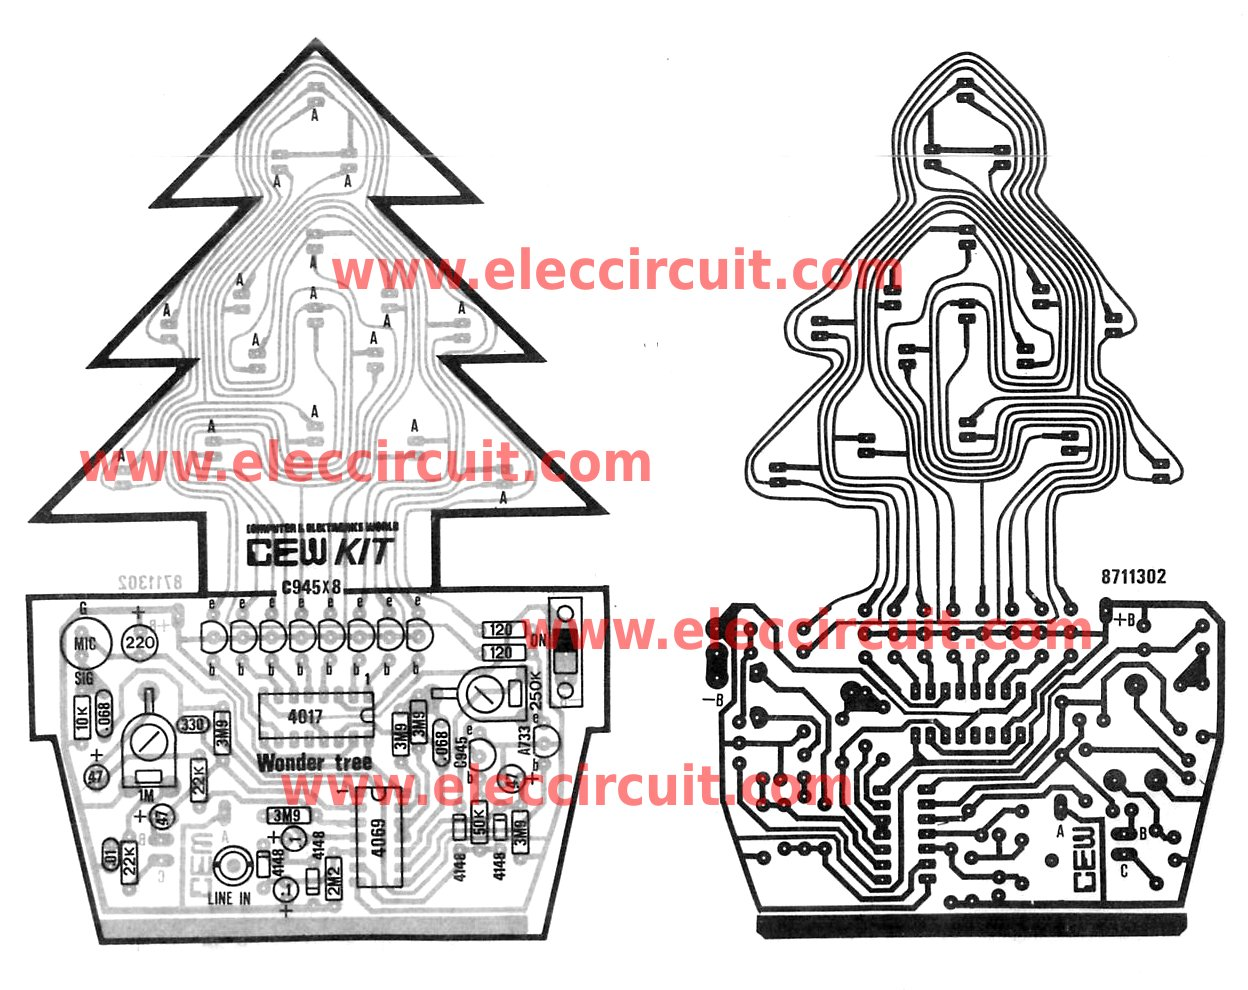 Easy To Build Circuit Free Wiring Diagram For You Simple Amplifier Electronic Circuits Christmas Led Flasher Controlled By Audio A Builder